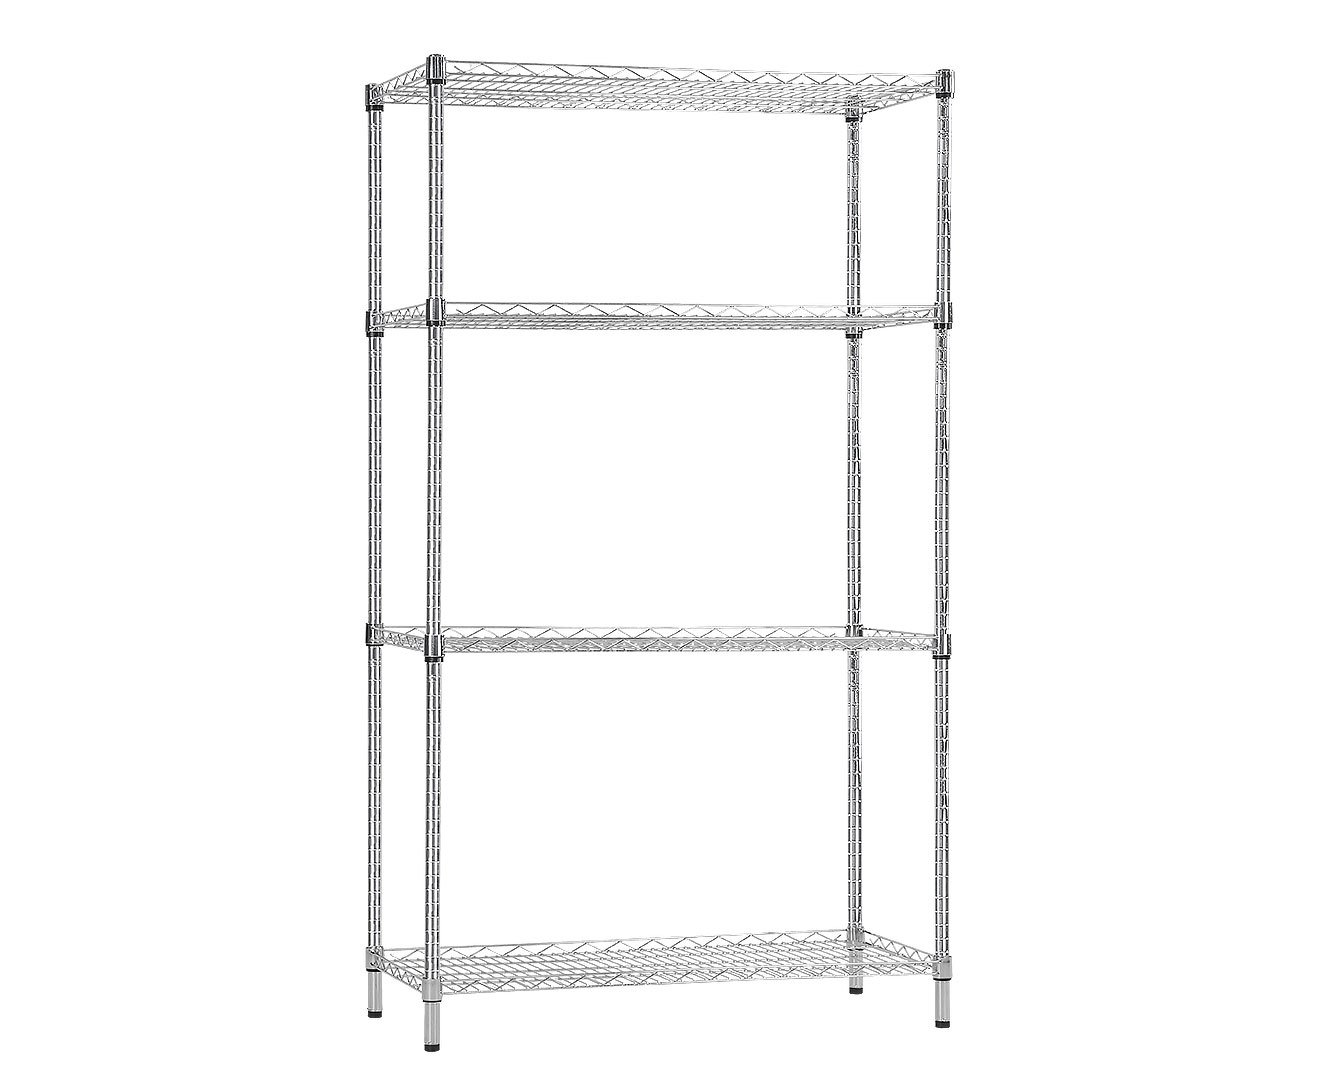 Syncrosteel Chrome Wire Shelving Storage Unit 1200 x 600mm - 1.8m high - $270.3